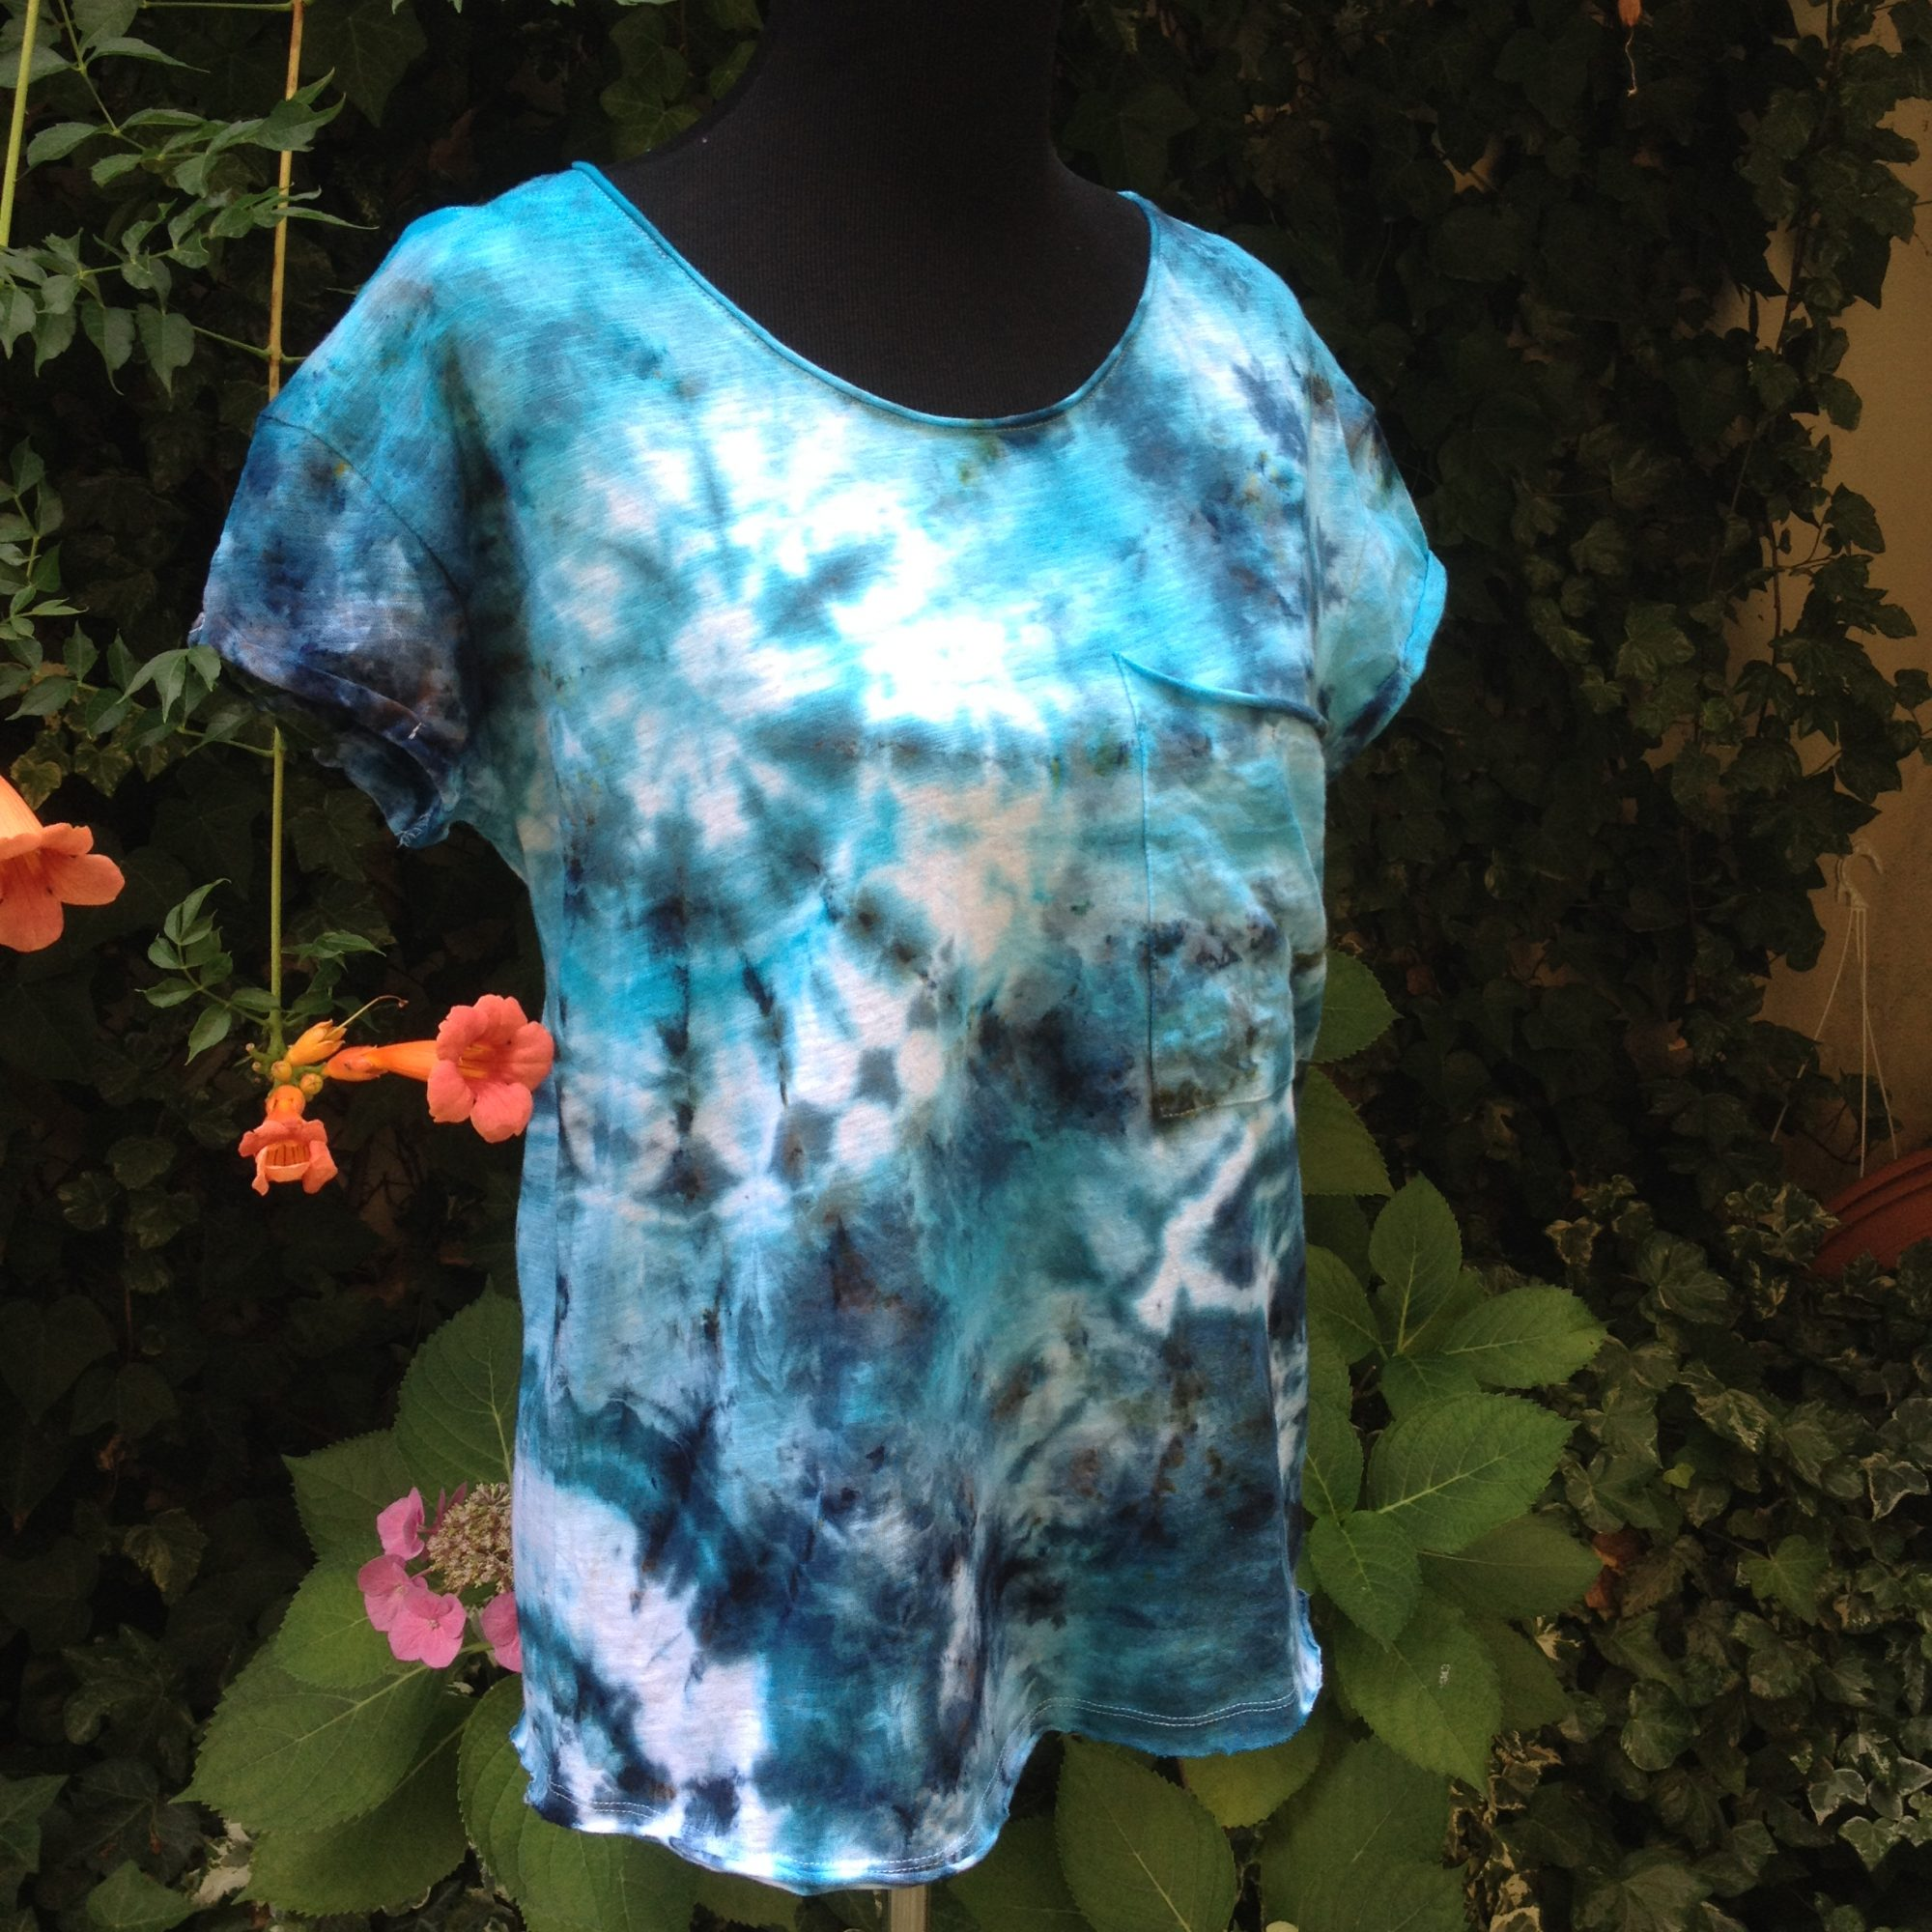 Blue vibes. Ice-dyed cotton t-shirt